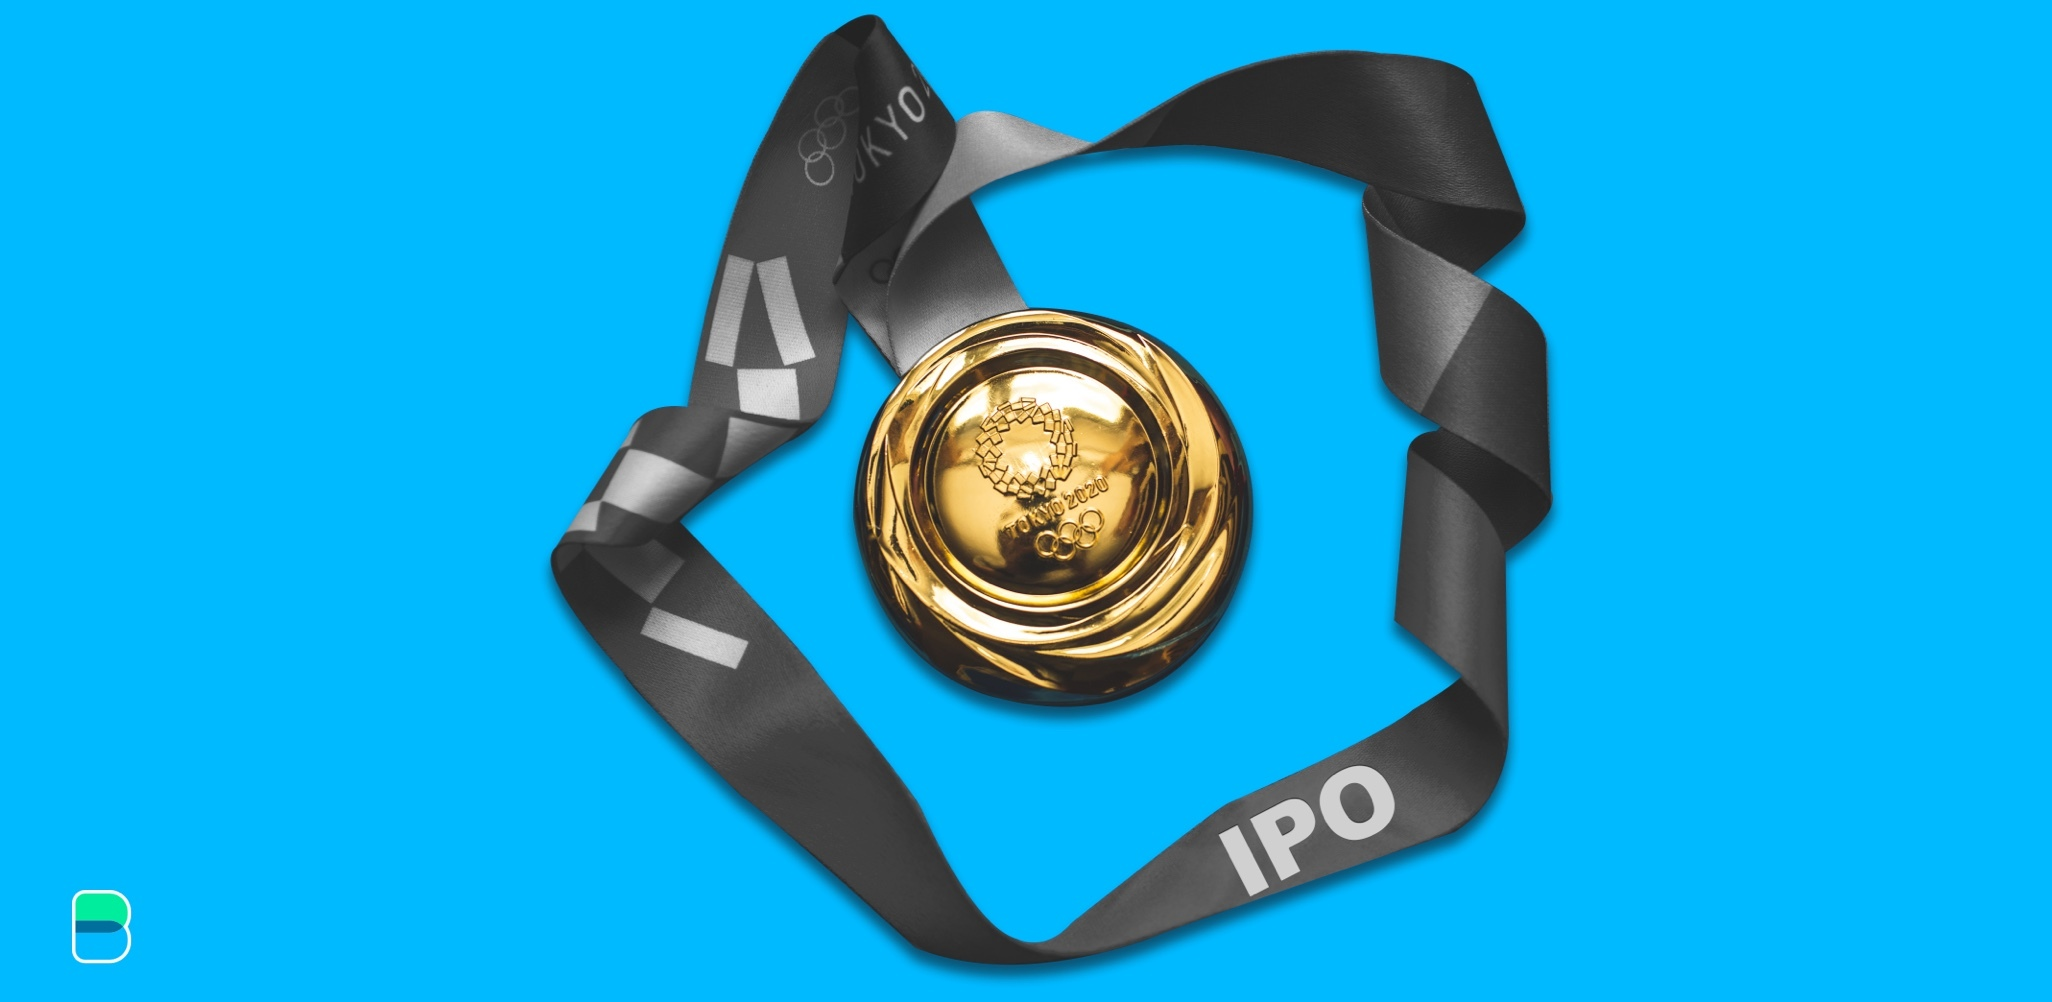 From Olympics to IPO — Japan's happening